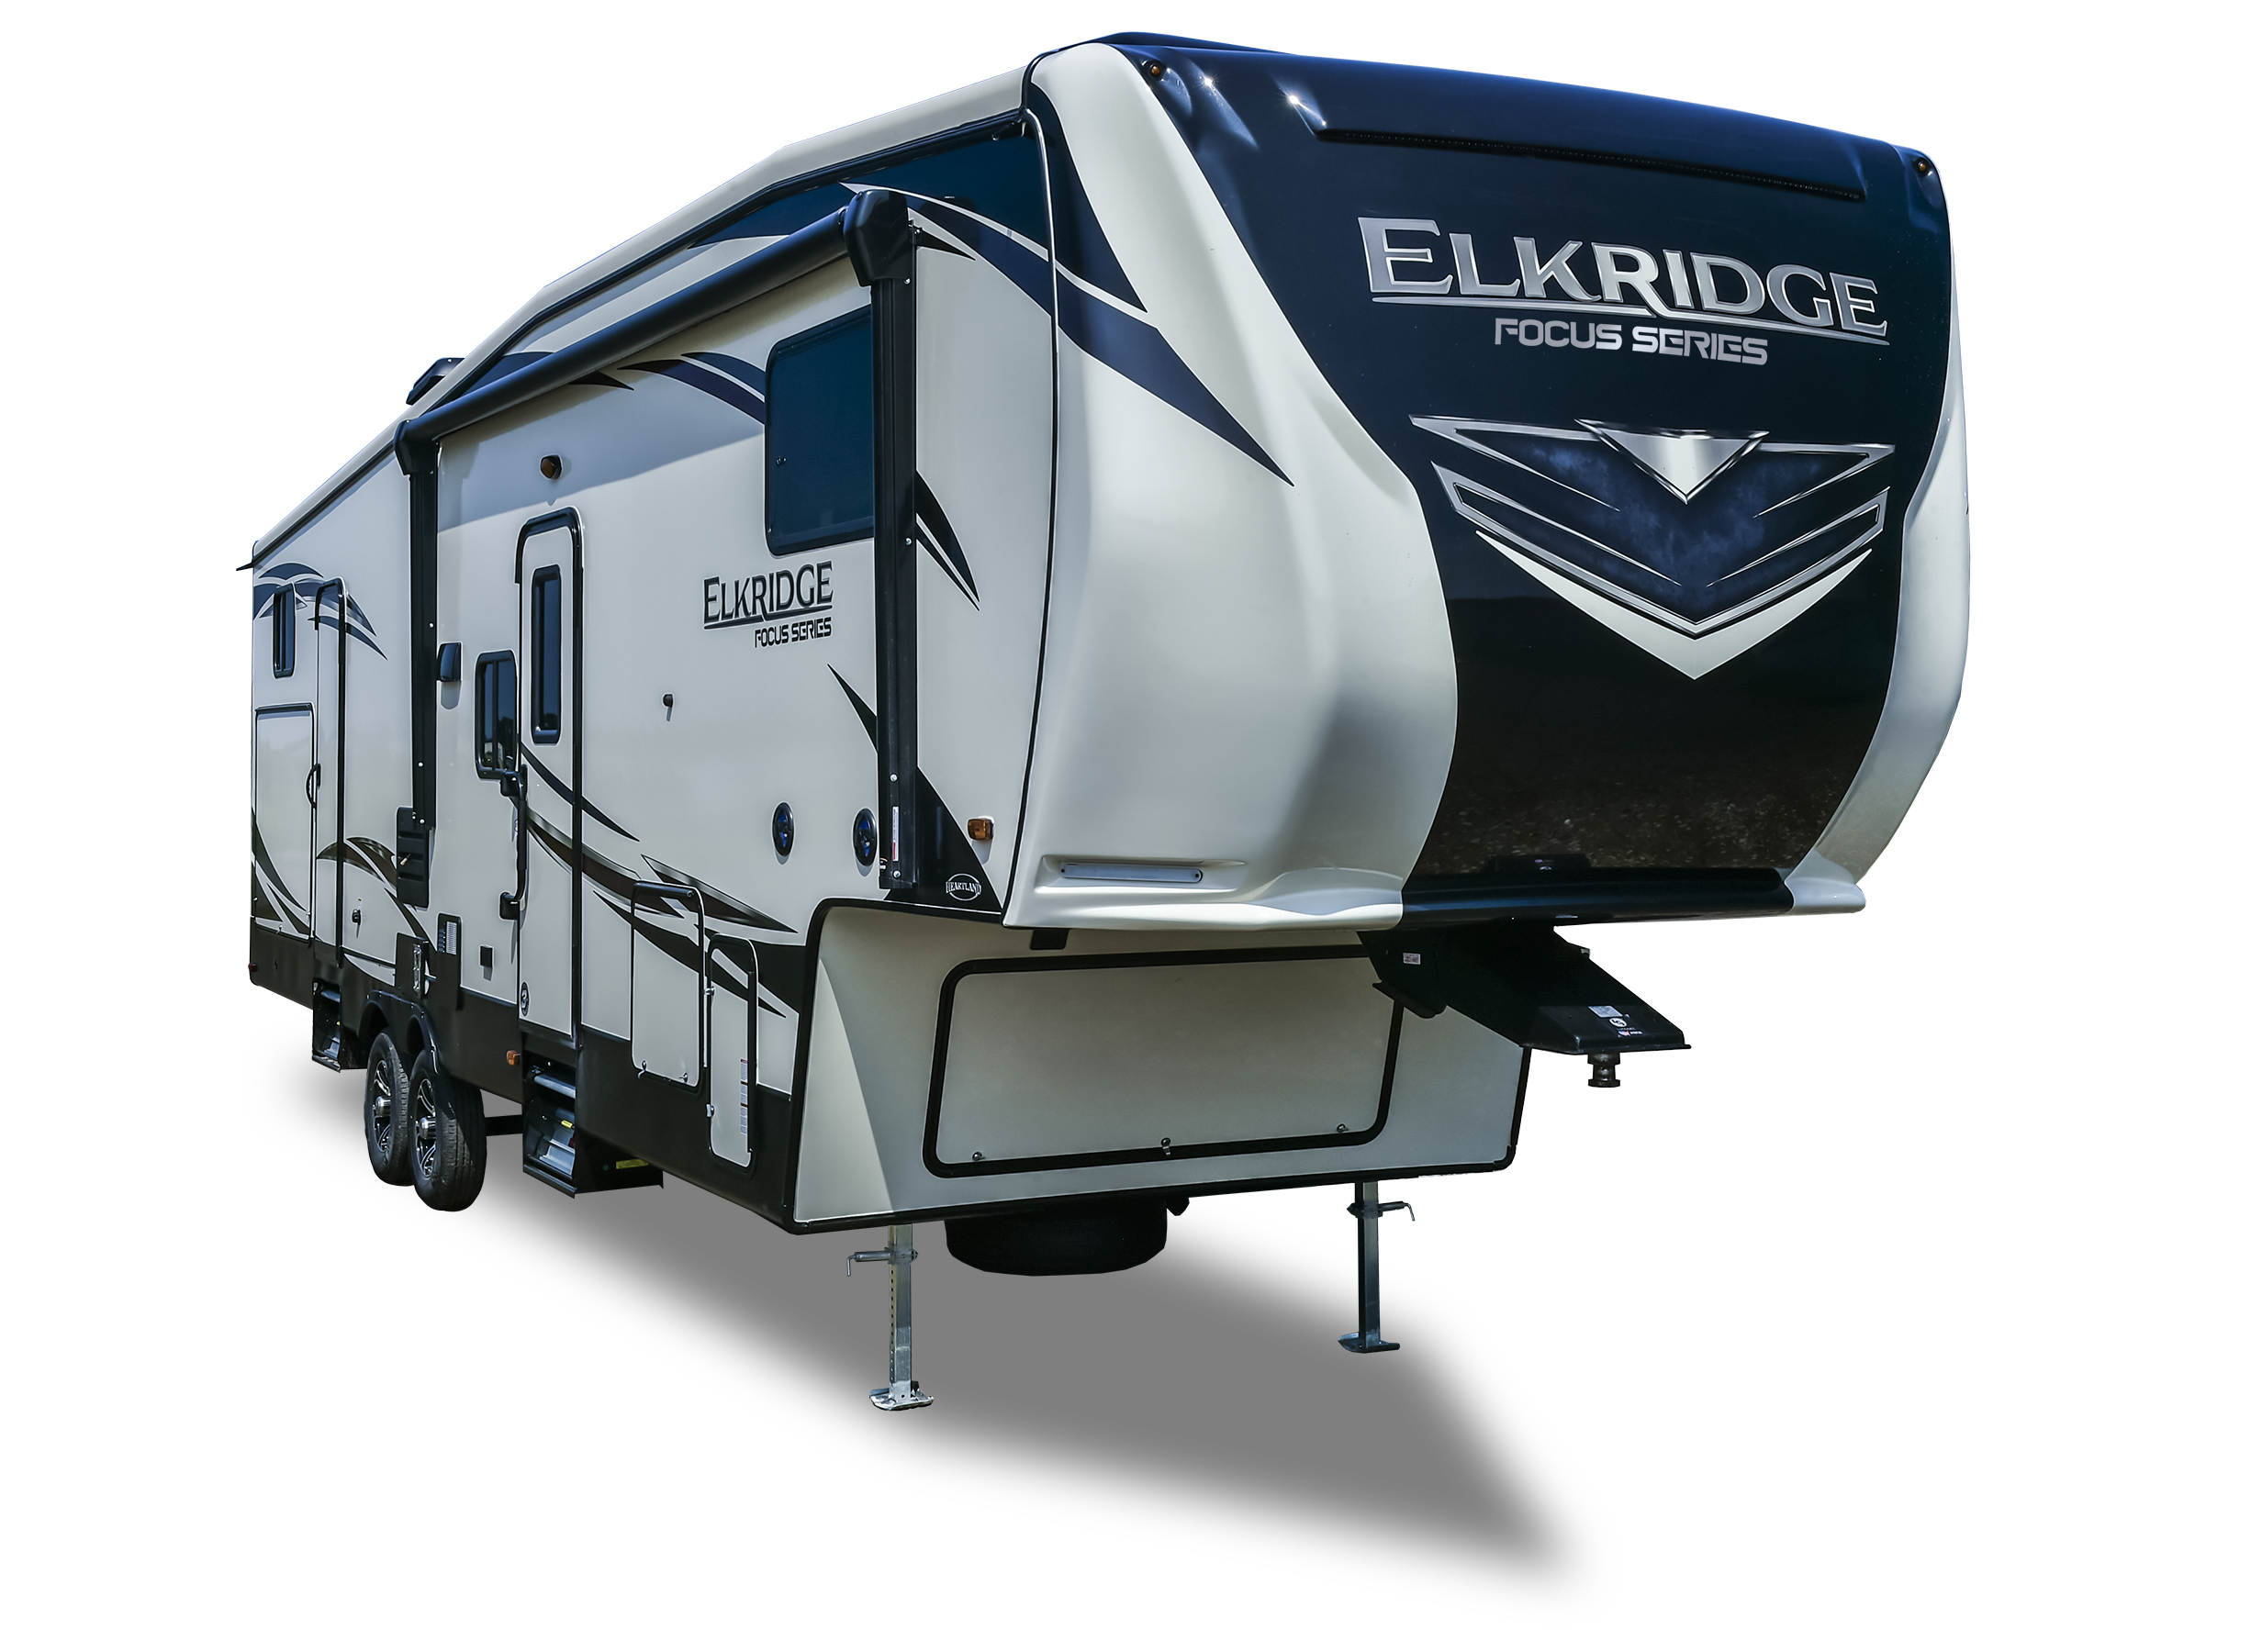 Heartland ElkRidge Focus Fifth Wheel